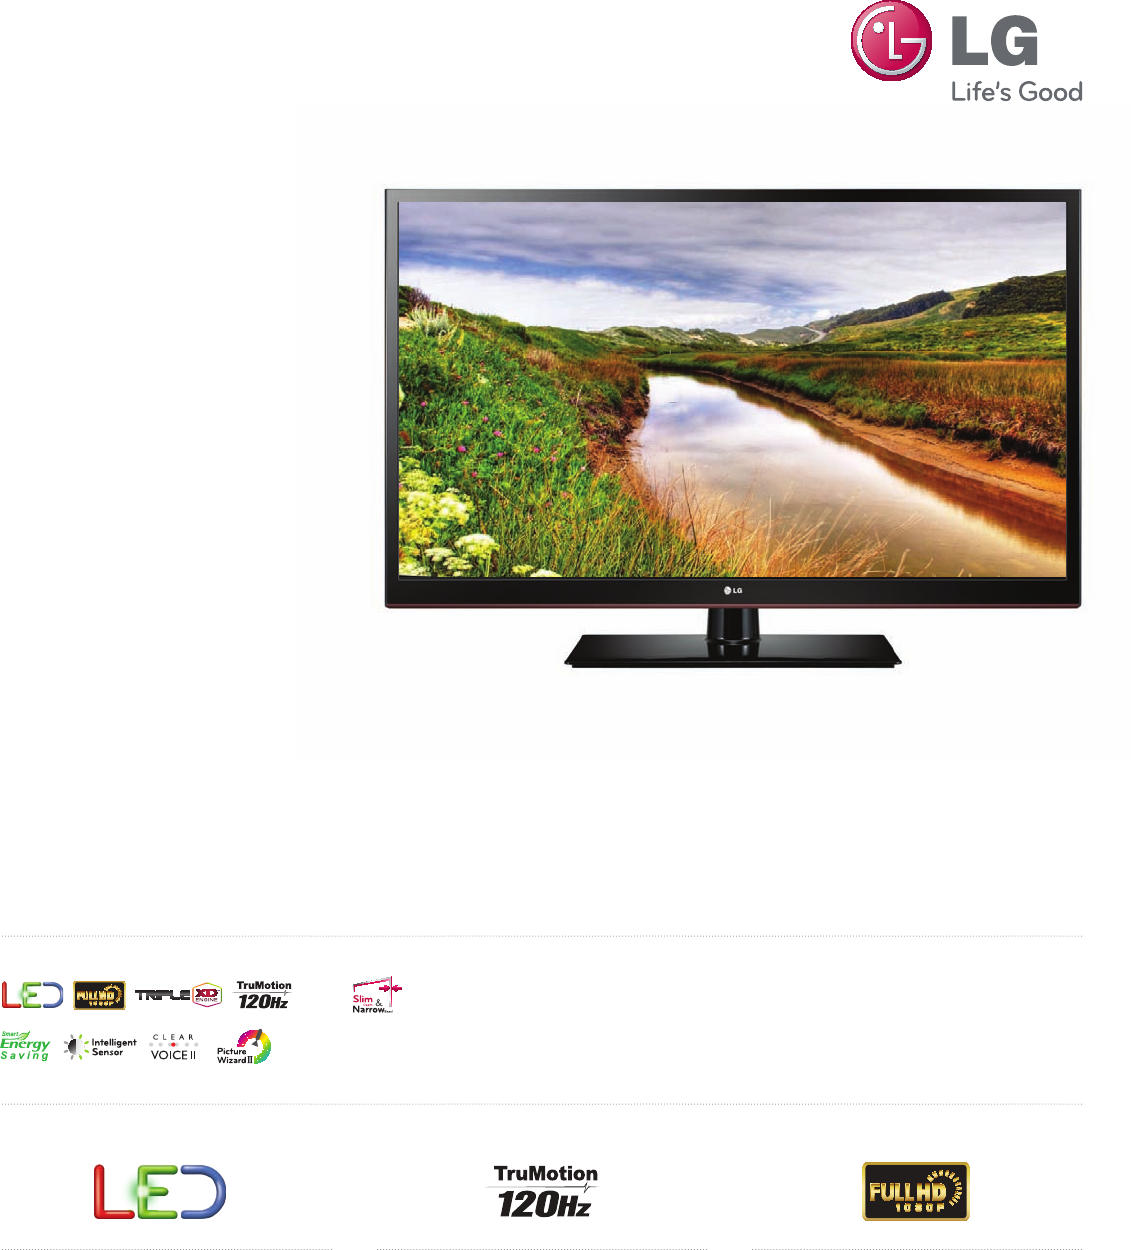 Lg 55ls4500 User Manual Specification Spec Sheets 2012 He Lcd 1